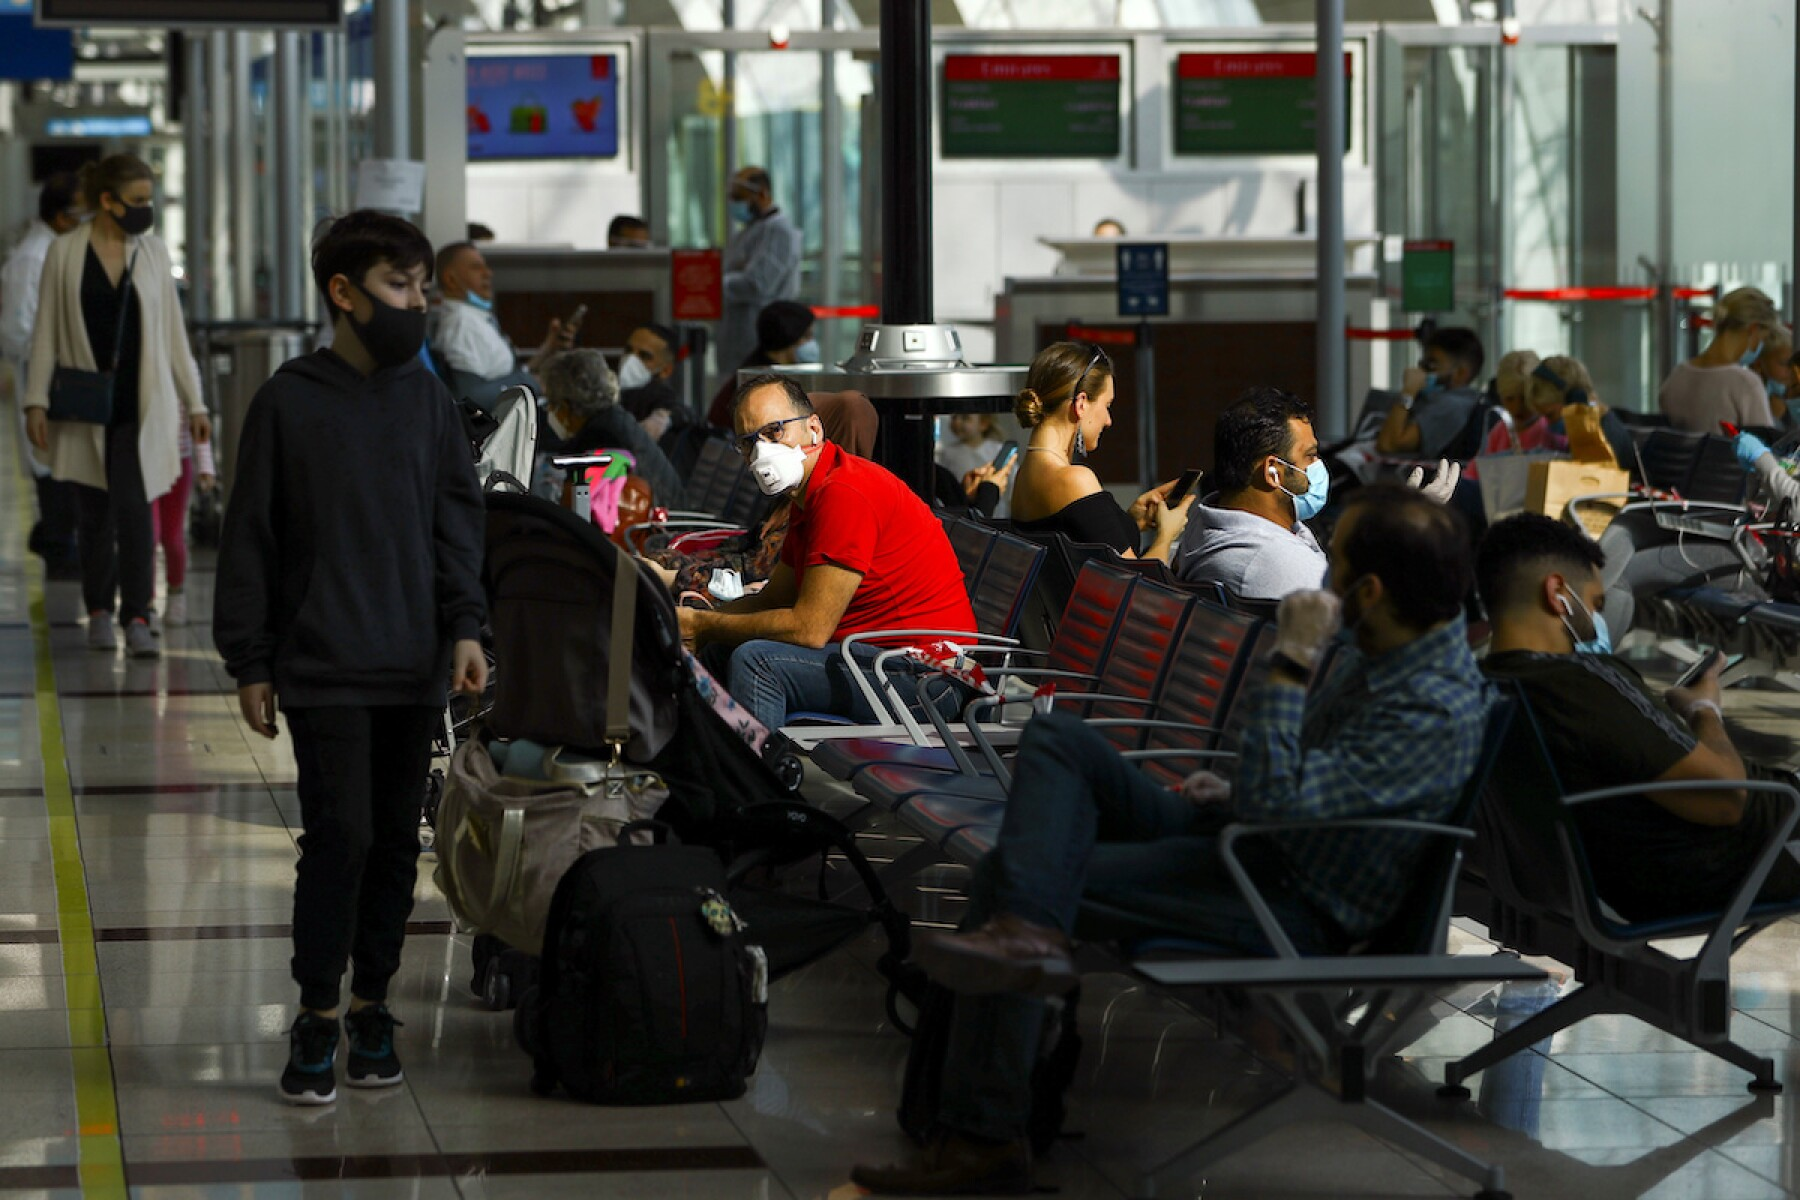 Passengers wait before boarding at Dubai International Airport, as Emirates airline resumed limited outbound passenger flights amid the outbreak of the coronavirus disease (COVID-19) in Dubai